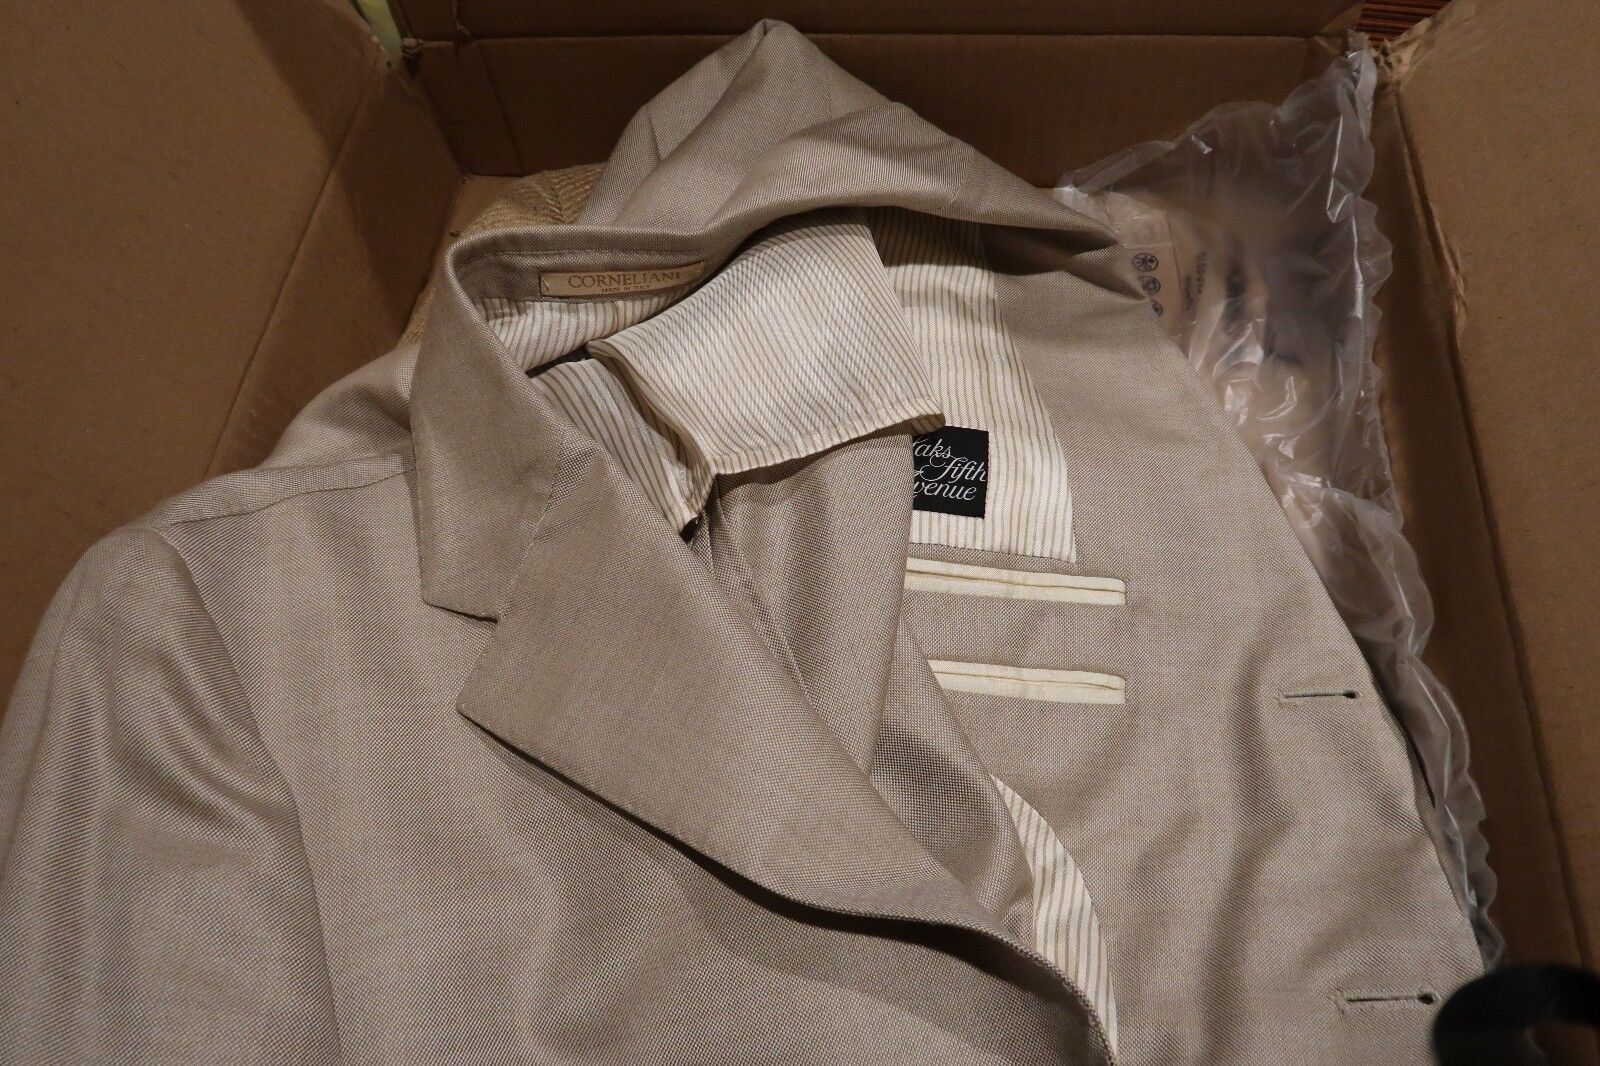 Corneliani 3 Button wolle& Silk Sport Coat - Saks Fifth Avenue 52R rotUCED  50